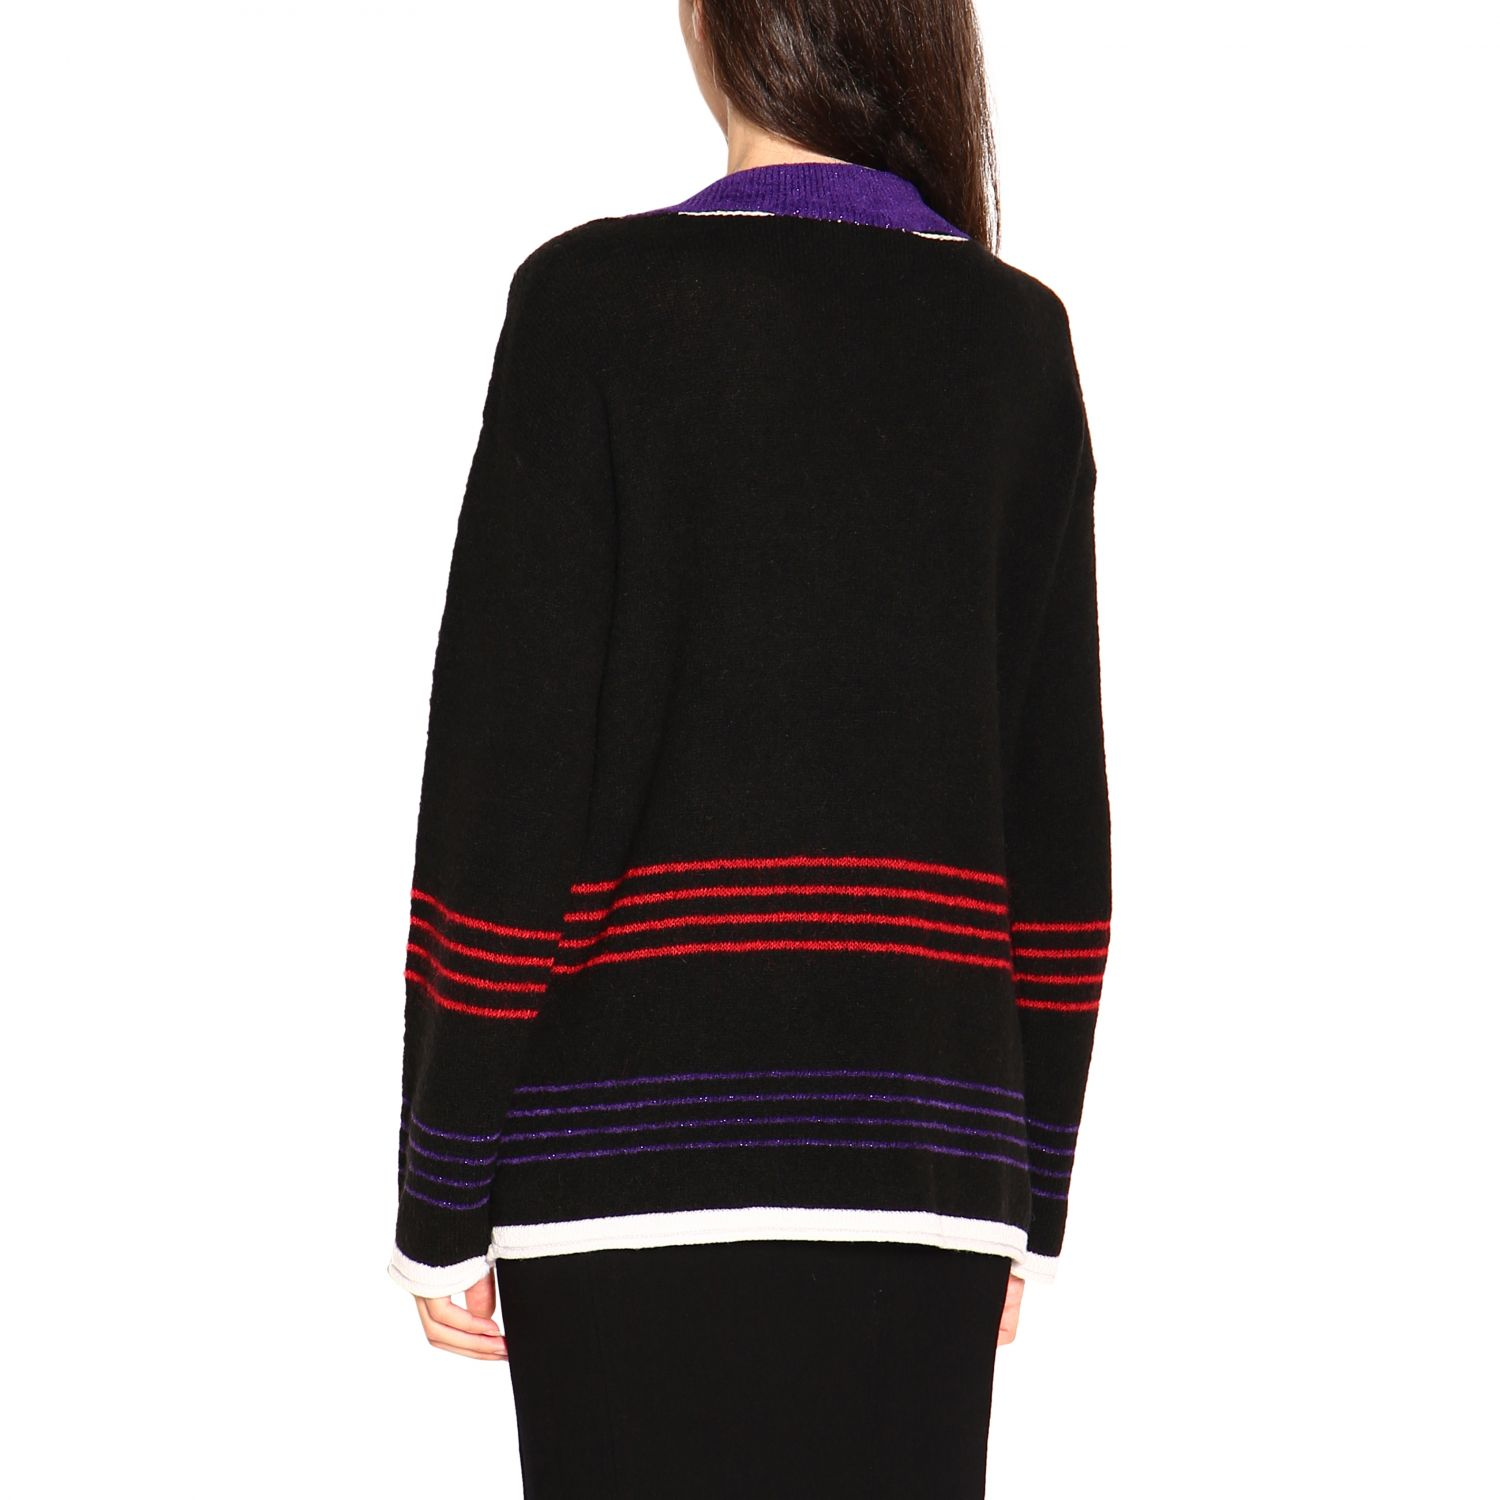 Jumper women Marco Rambaldi black 2